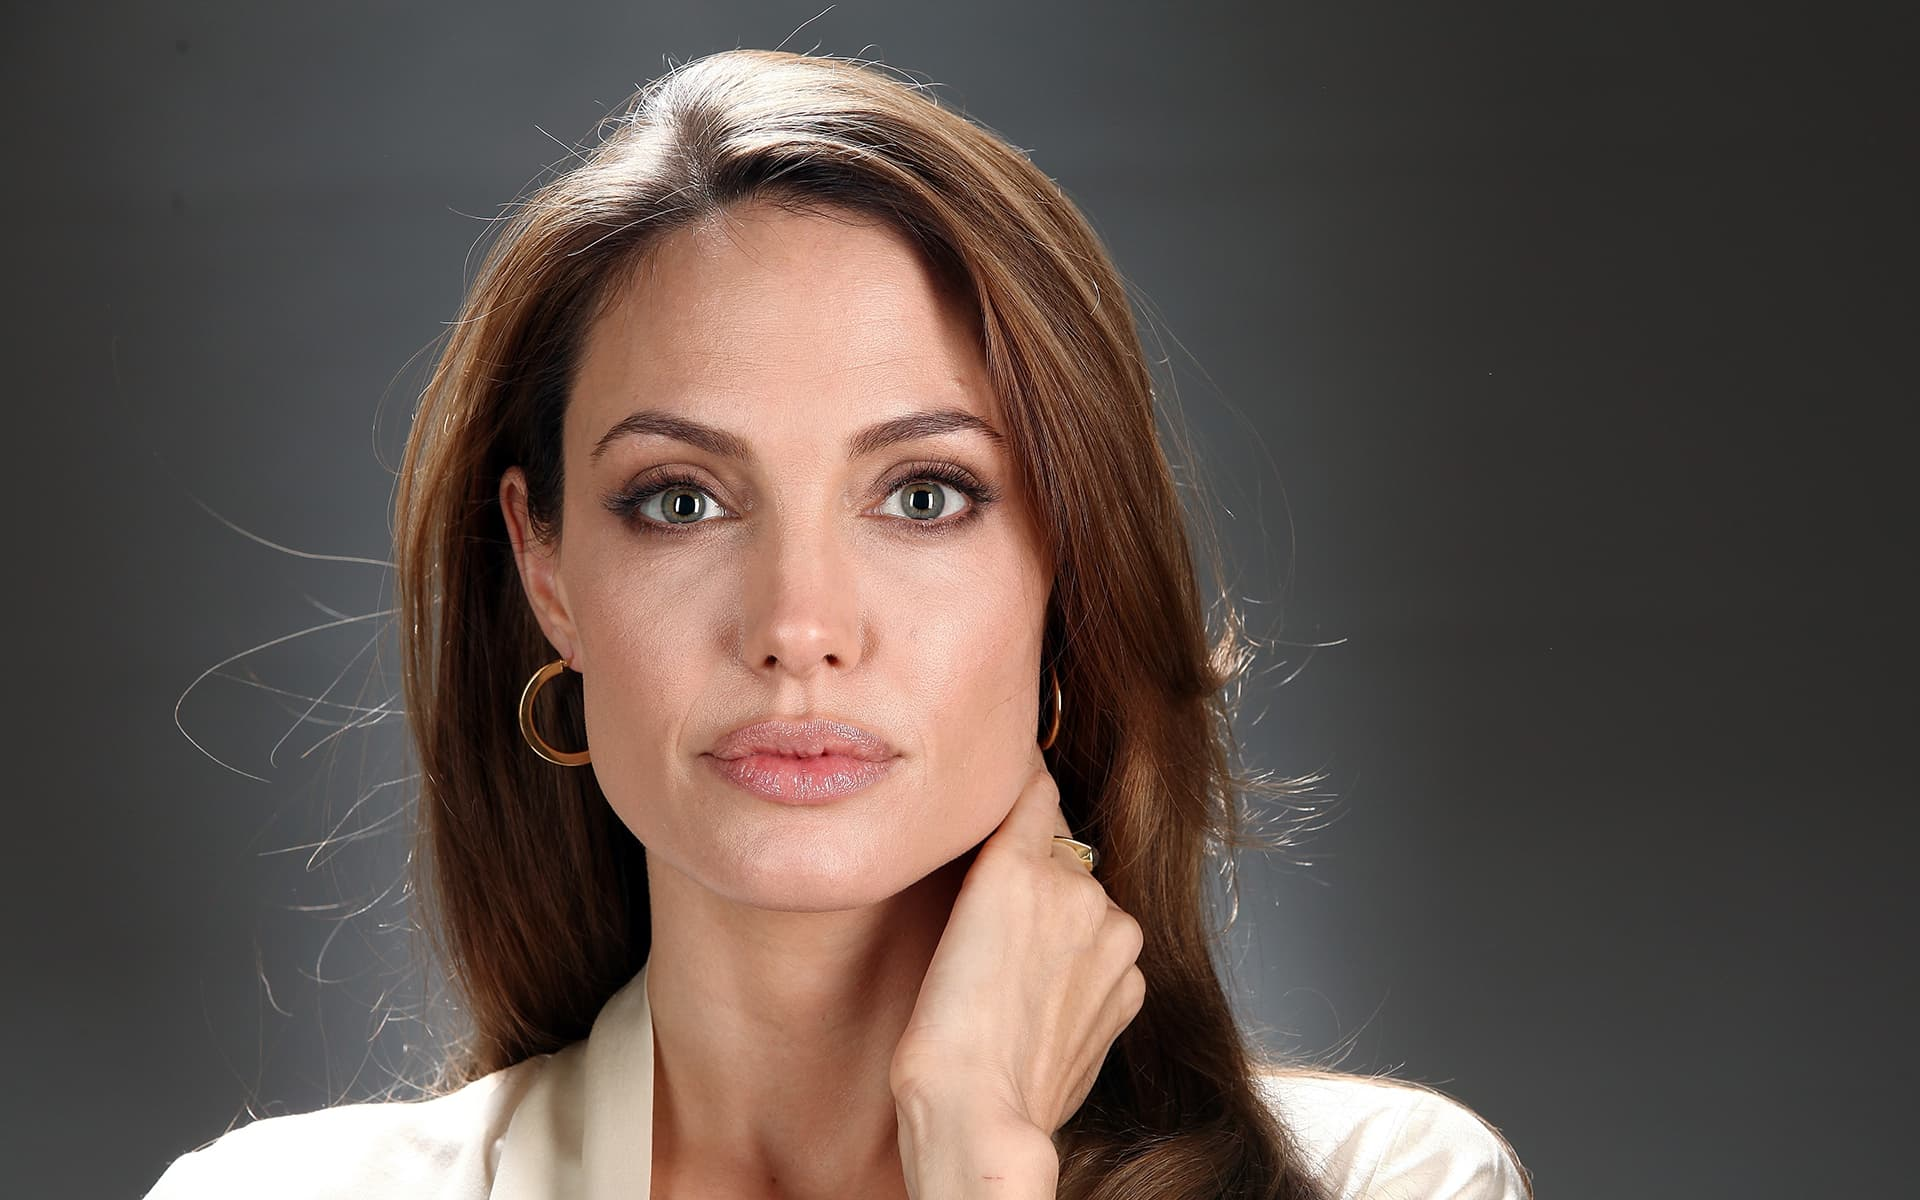 Angelina Jolie Hd Wallpapers: 30+ Angelina Jolie Wallpapers High Quality Resolution Download